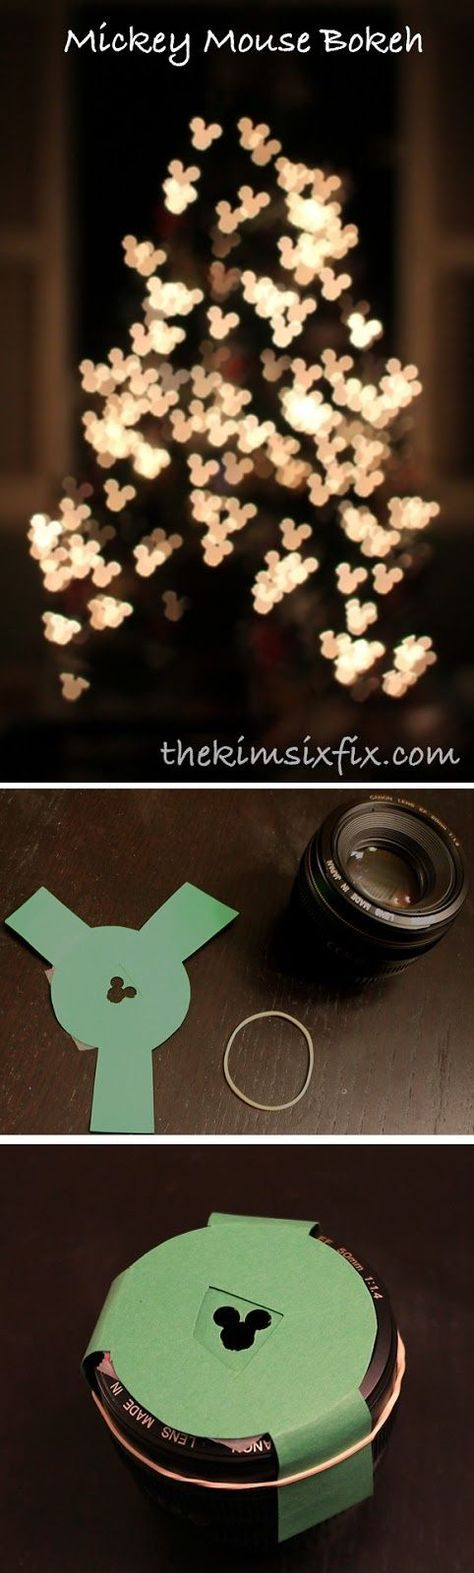 Mickey Bokeh for Night Photography at Disney World - Step-by-step instructions on how to make one for your camera